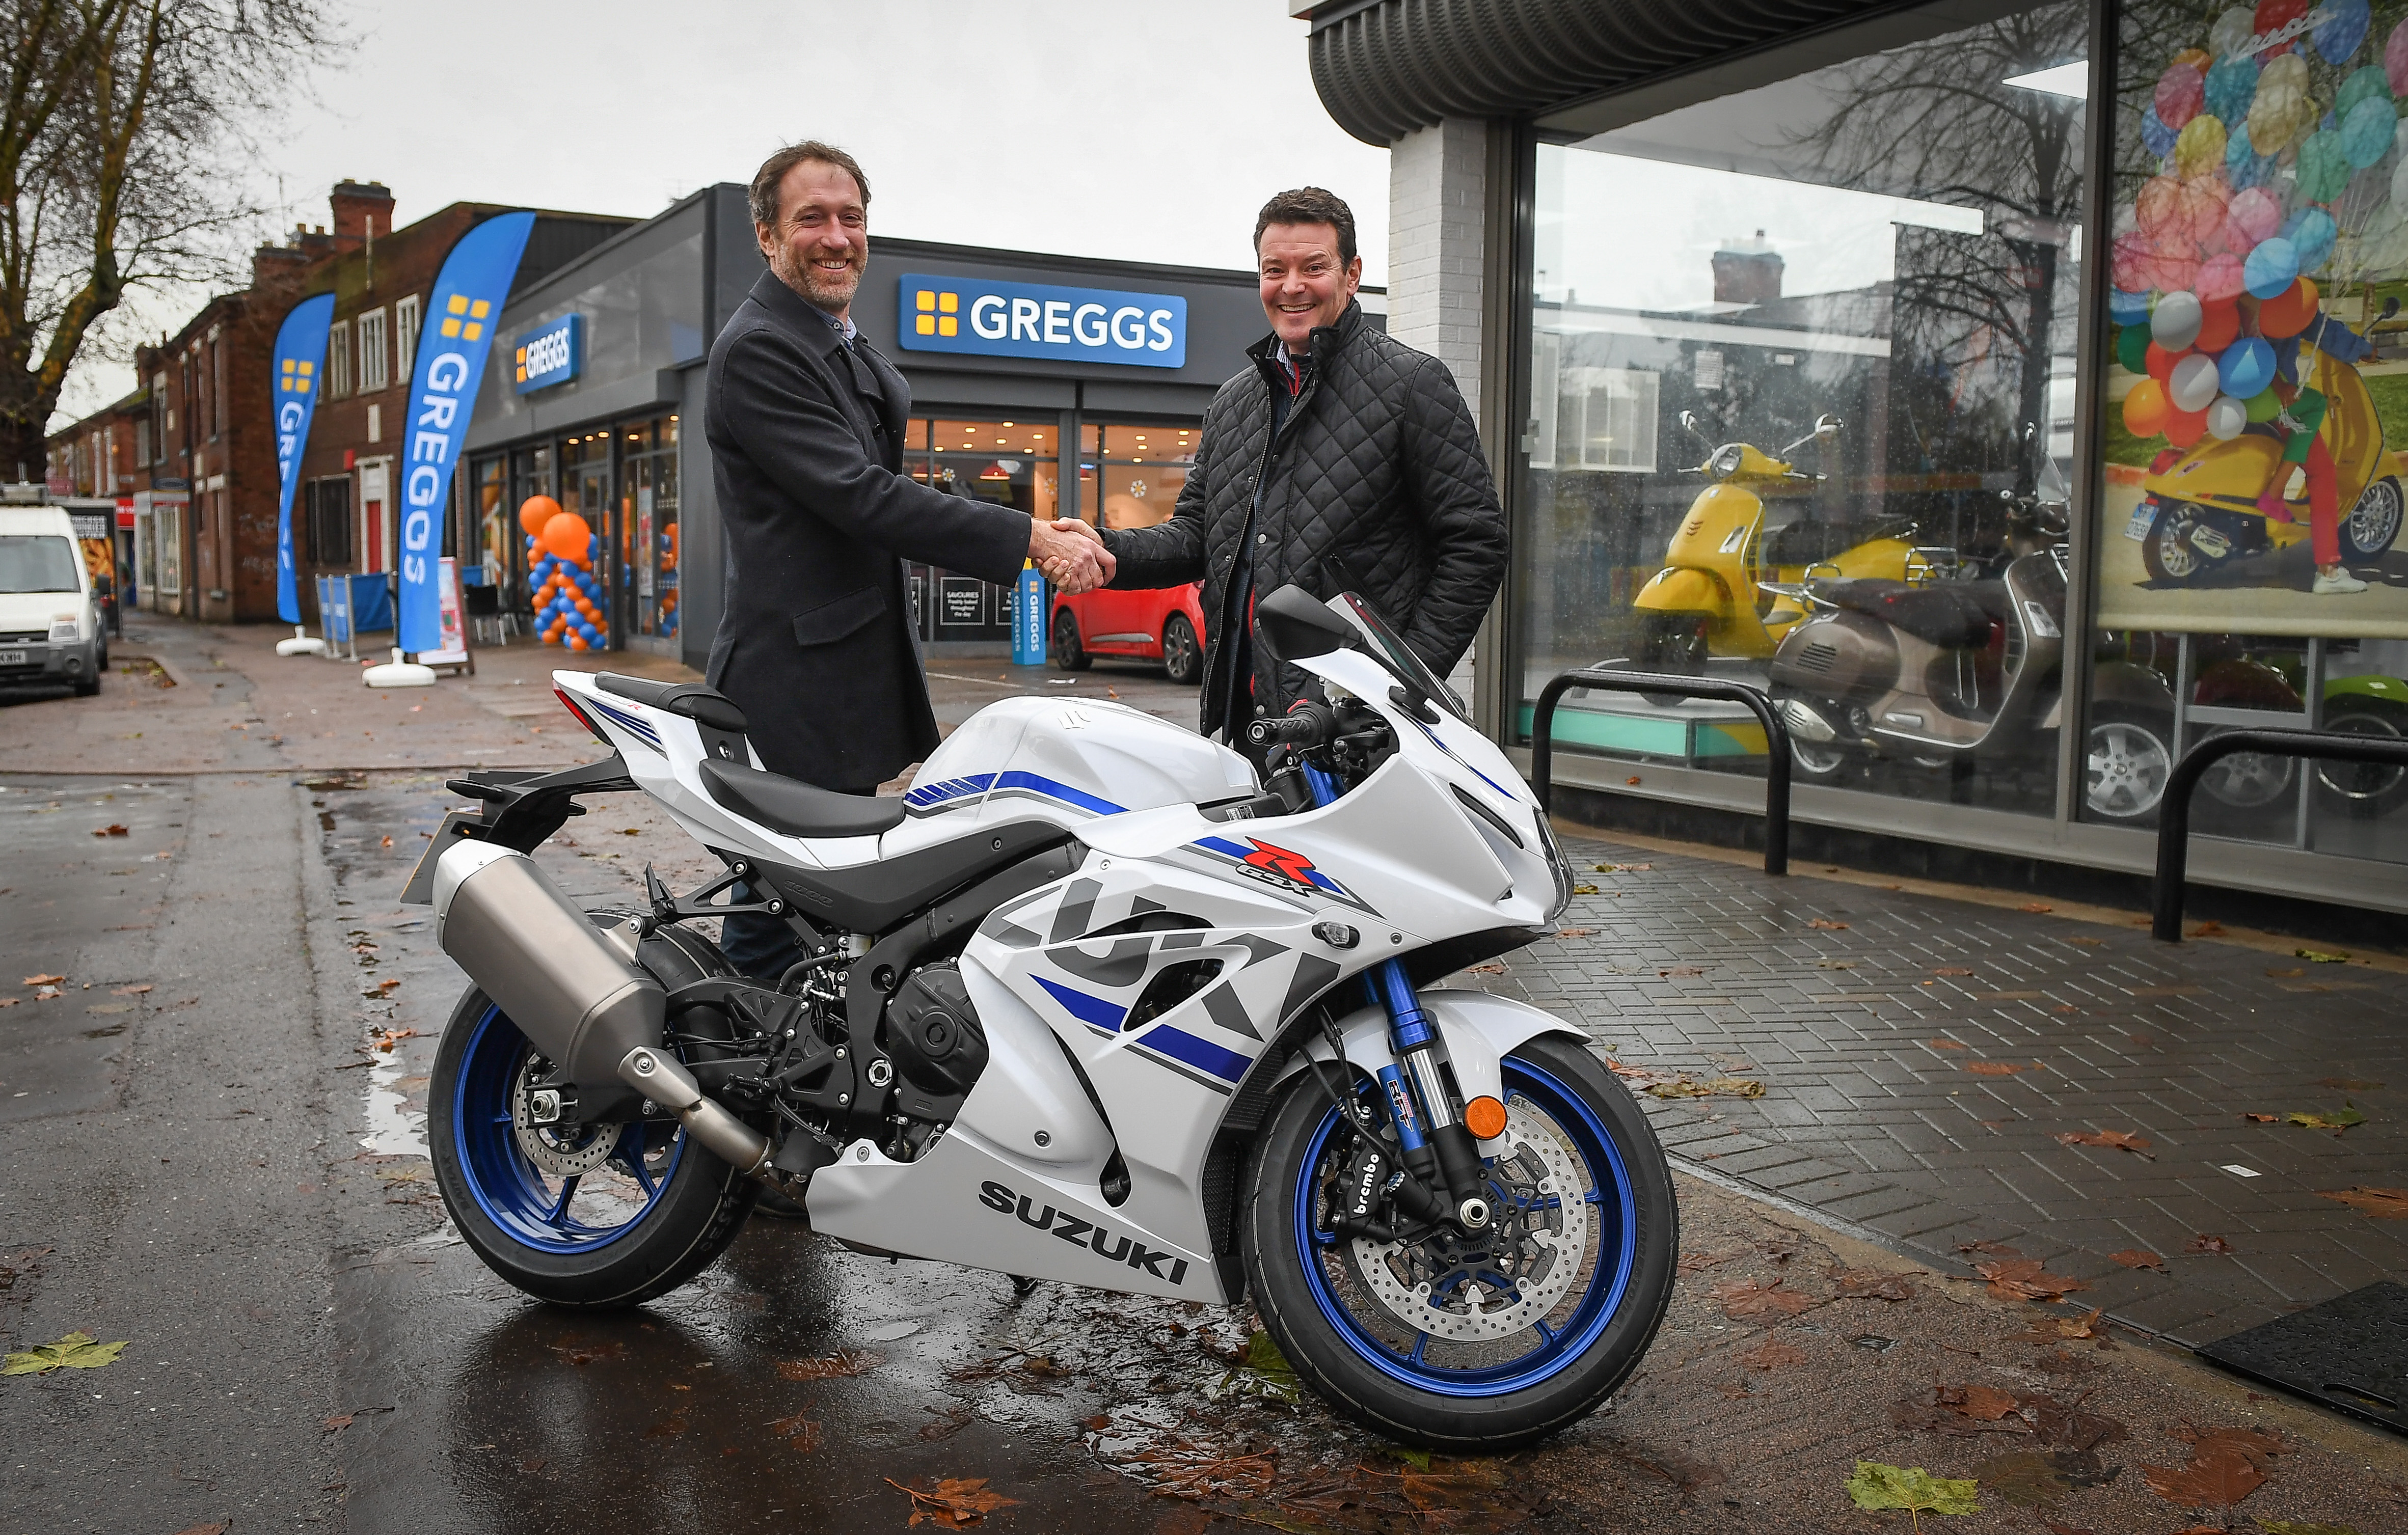 Motorcycle dealership leases neighbouring property to Greggs through Mather Jamie